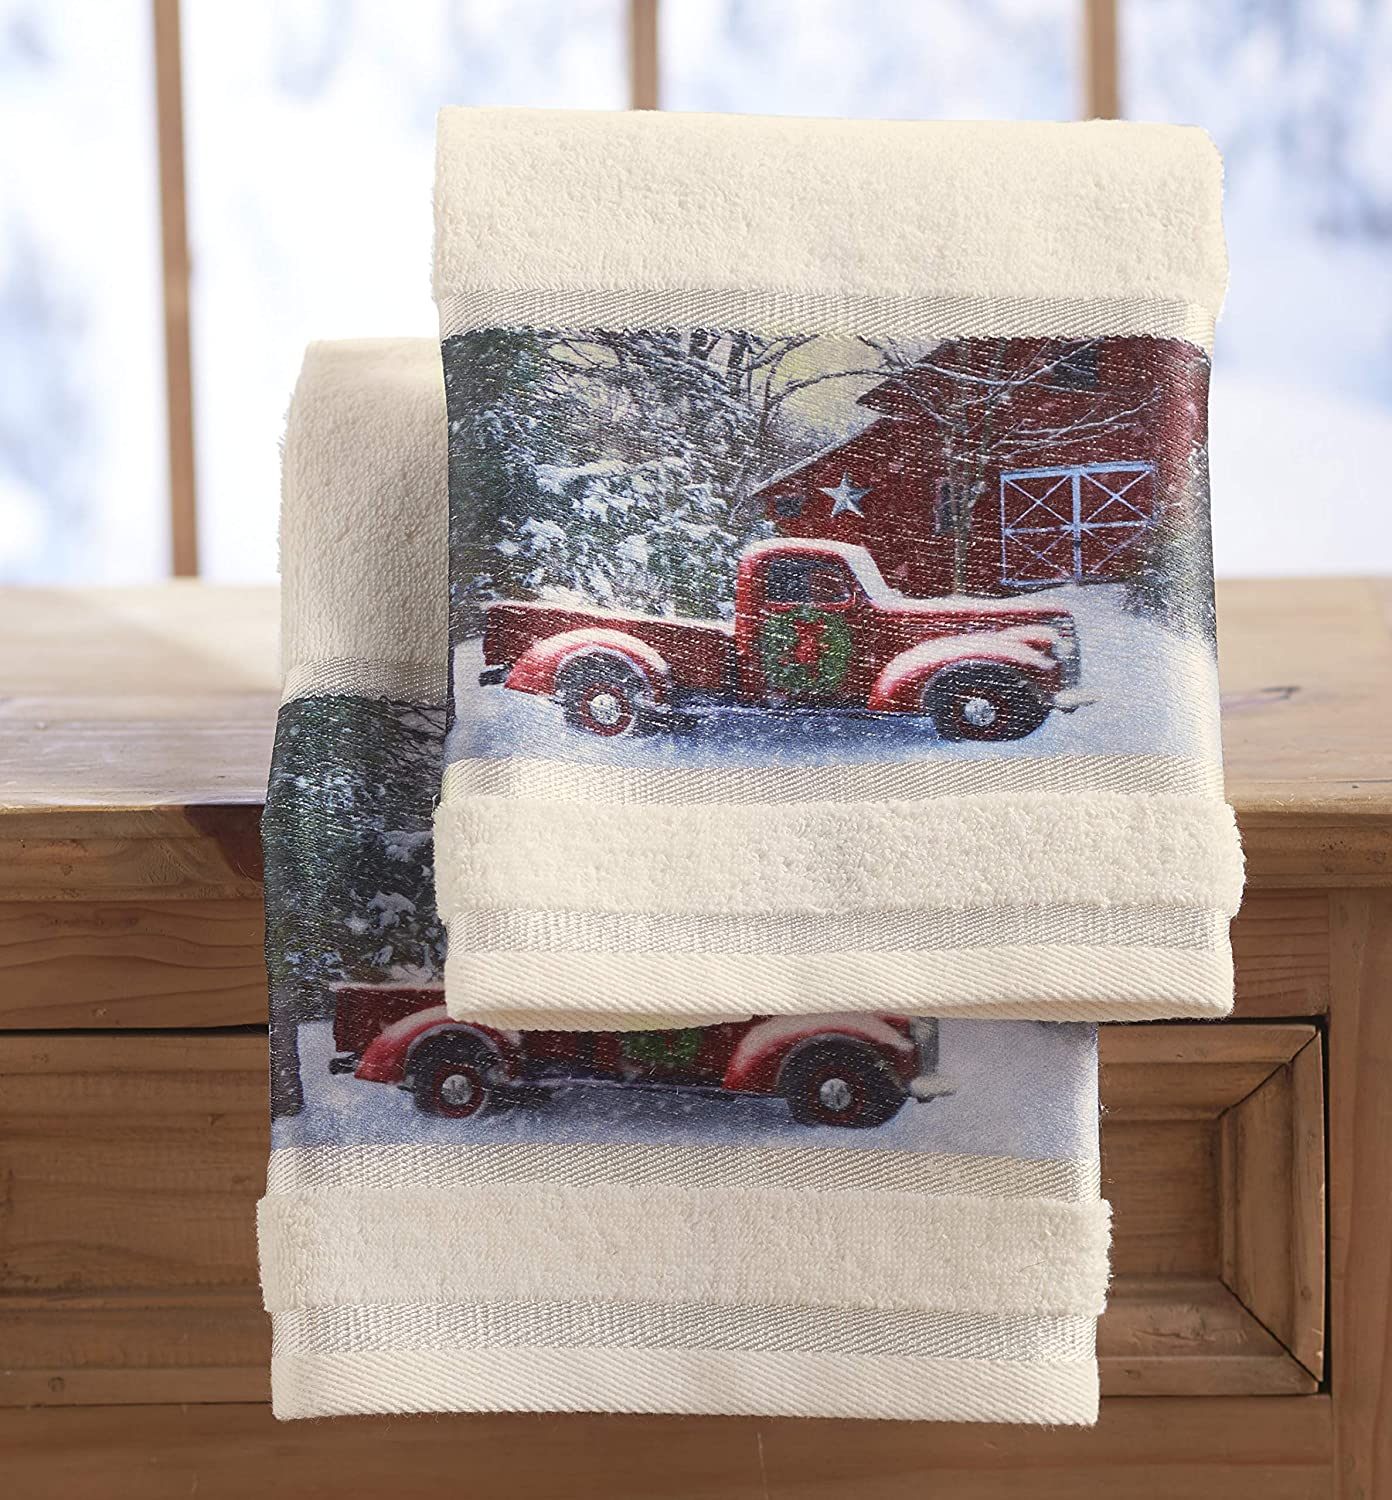 Amazon Com The Lakeside Collection Christmas Hand Towels With Decorative Red Truck Print Set Of 2 Home Kitchen